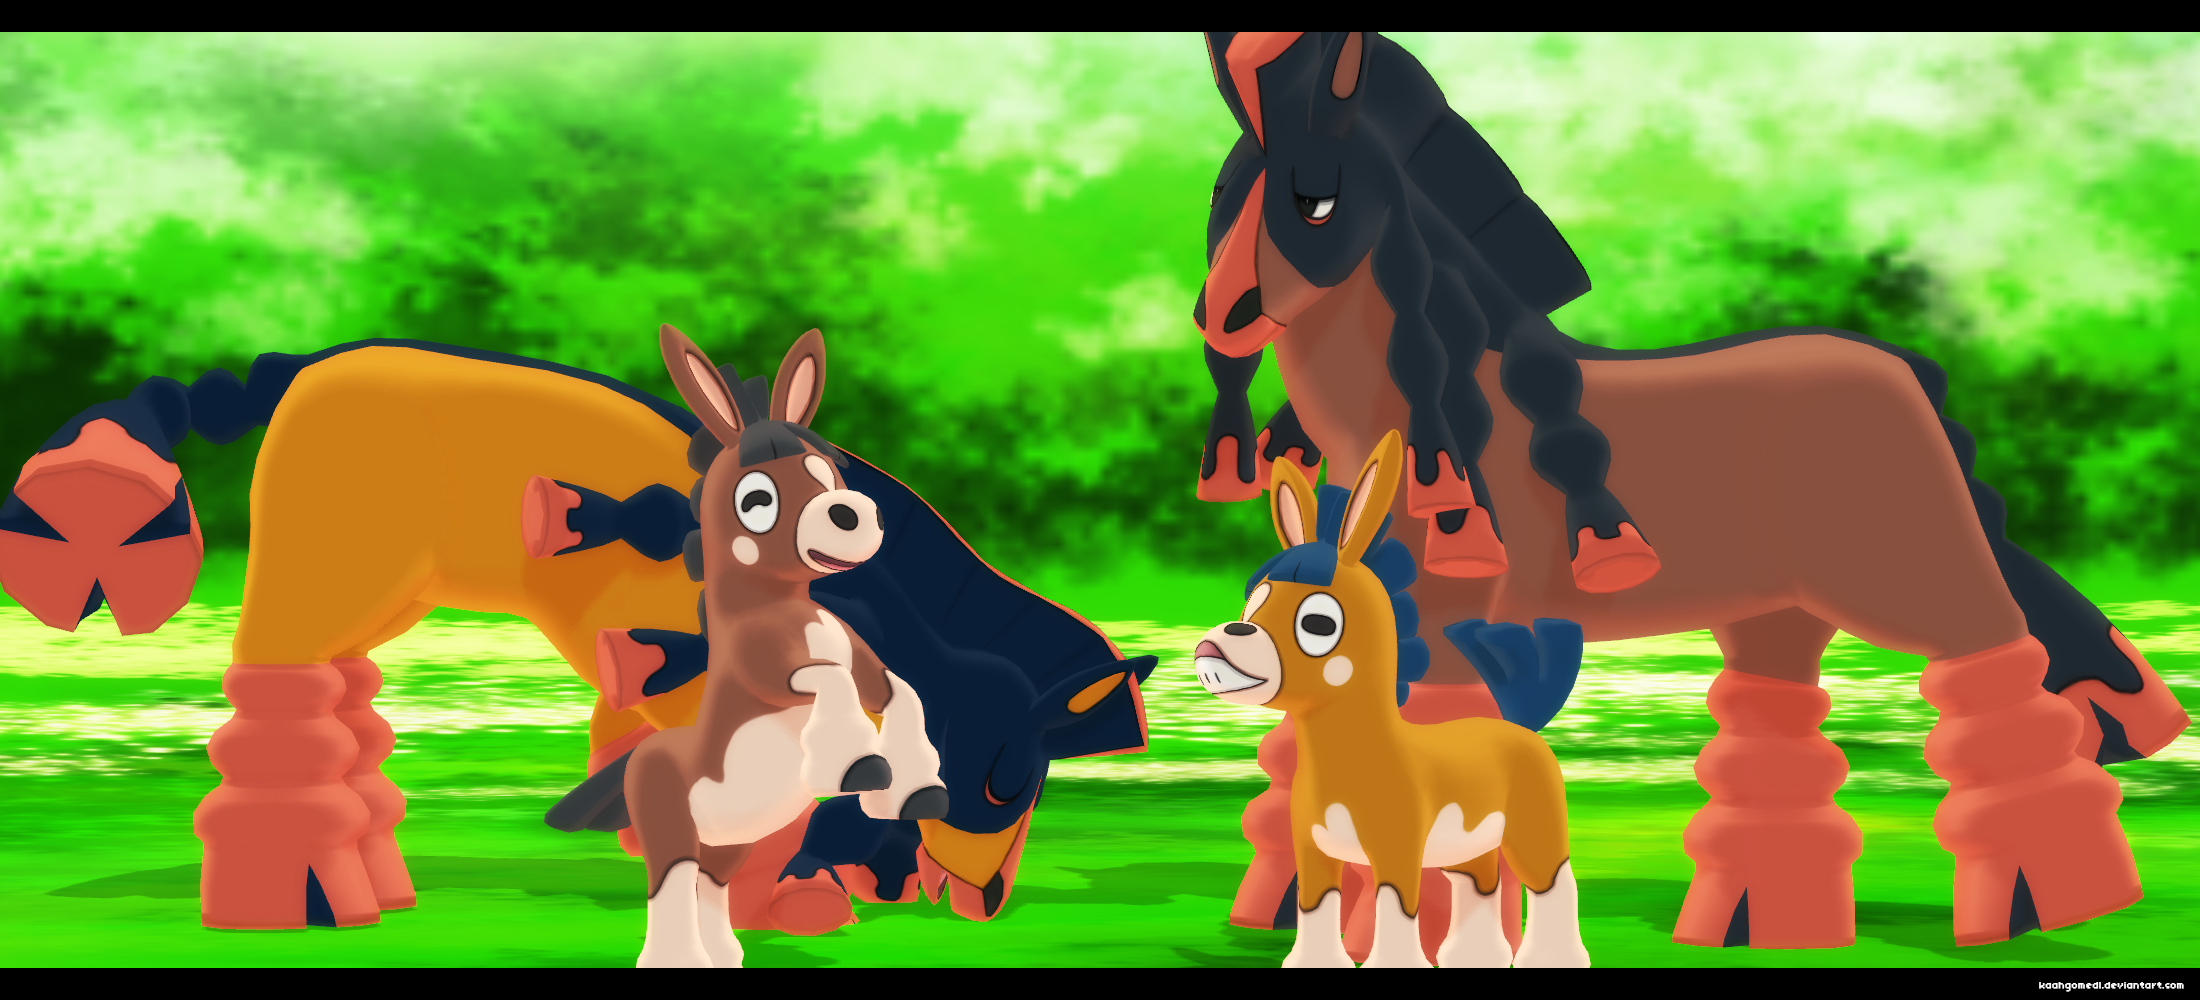 Mmd Pokemon Sun and Moon: Mudbray and Mudsdale by kaahgomedl